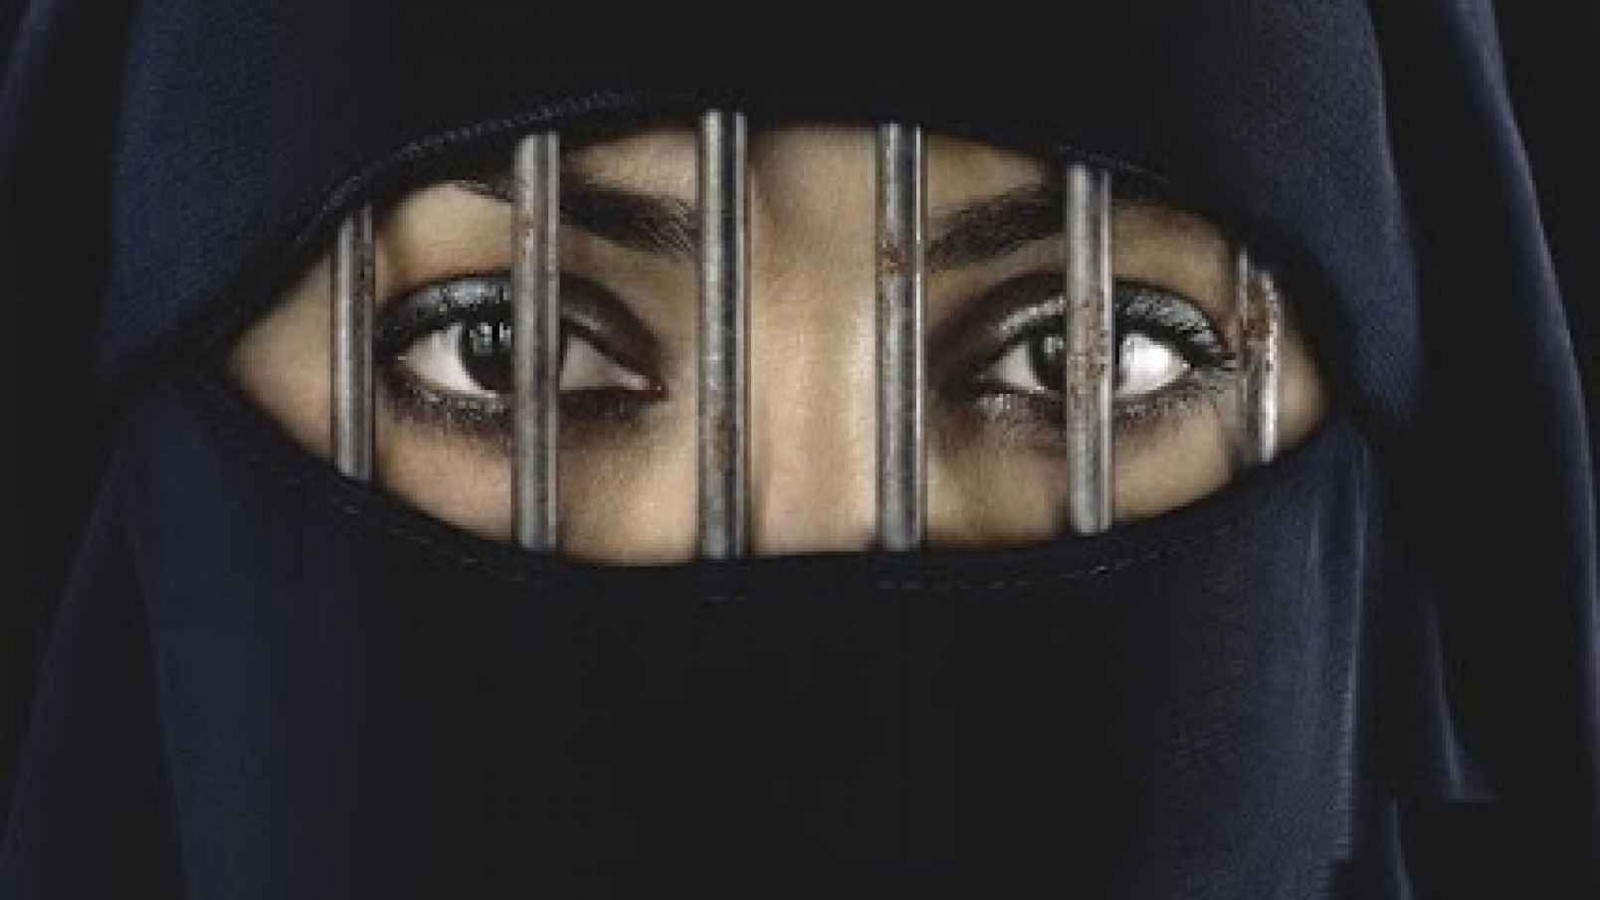 Women in Islam: Oppressed or Liberated?